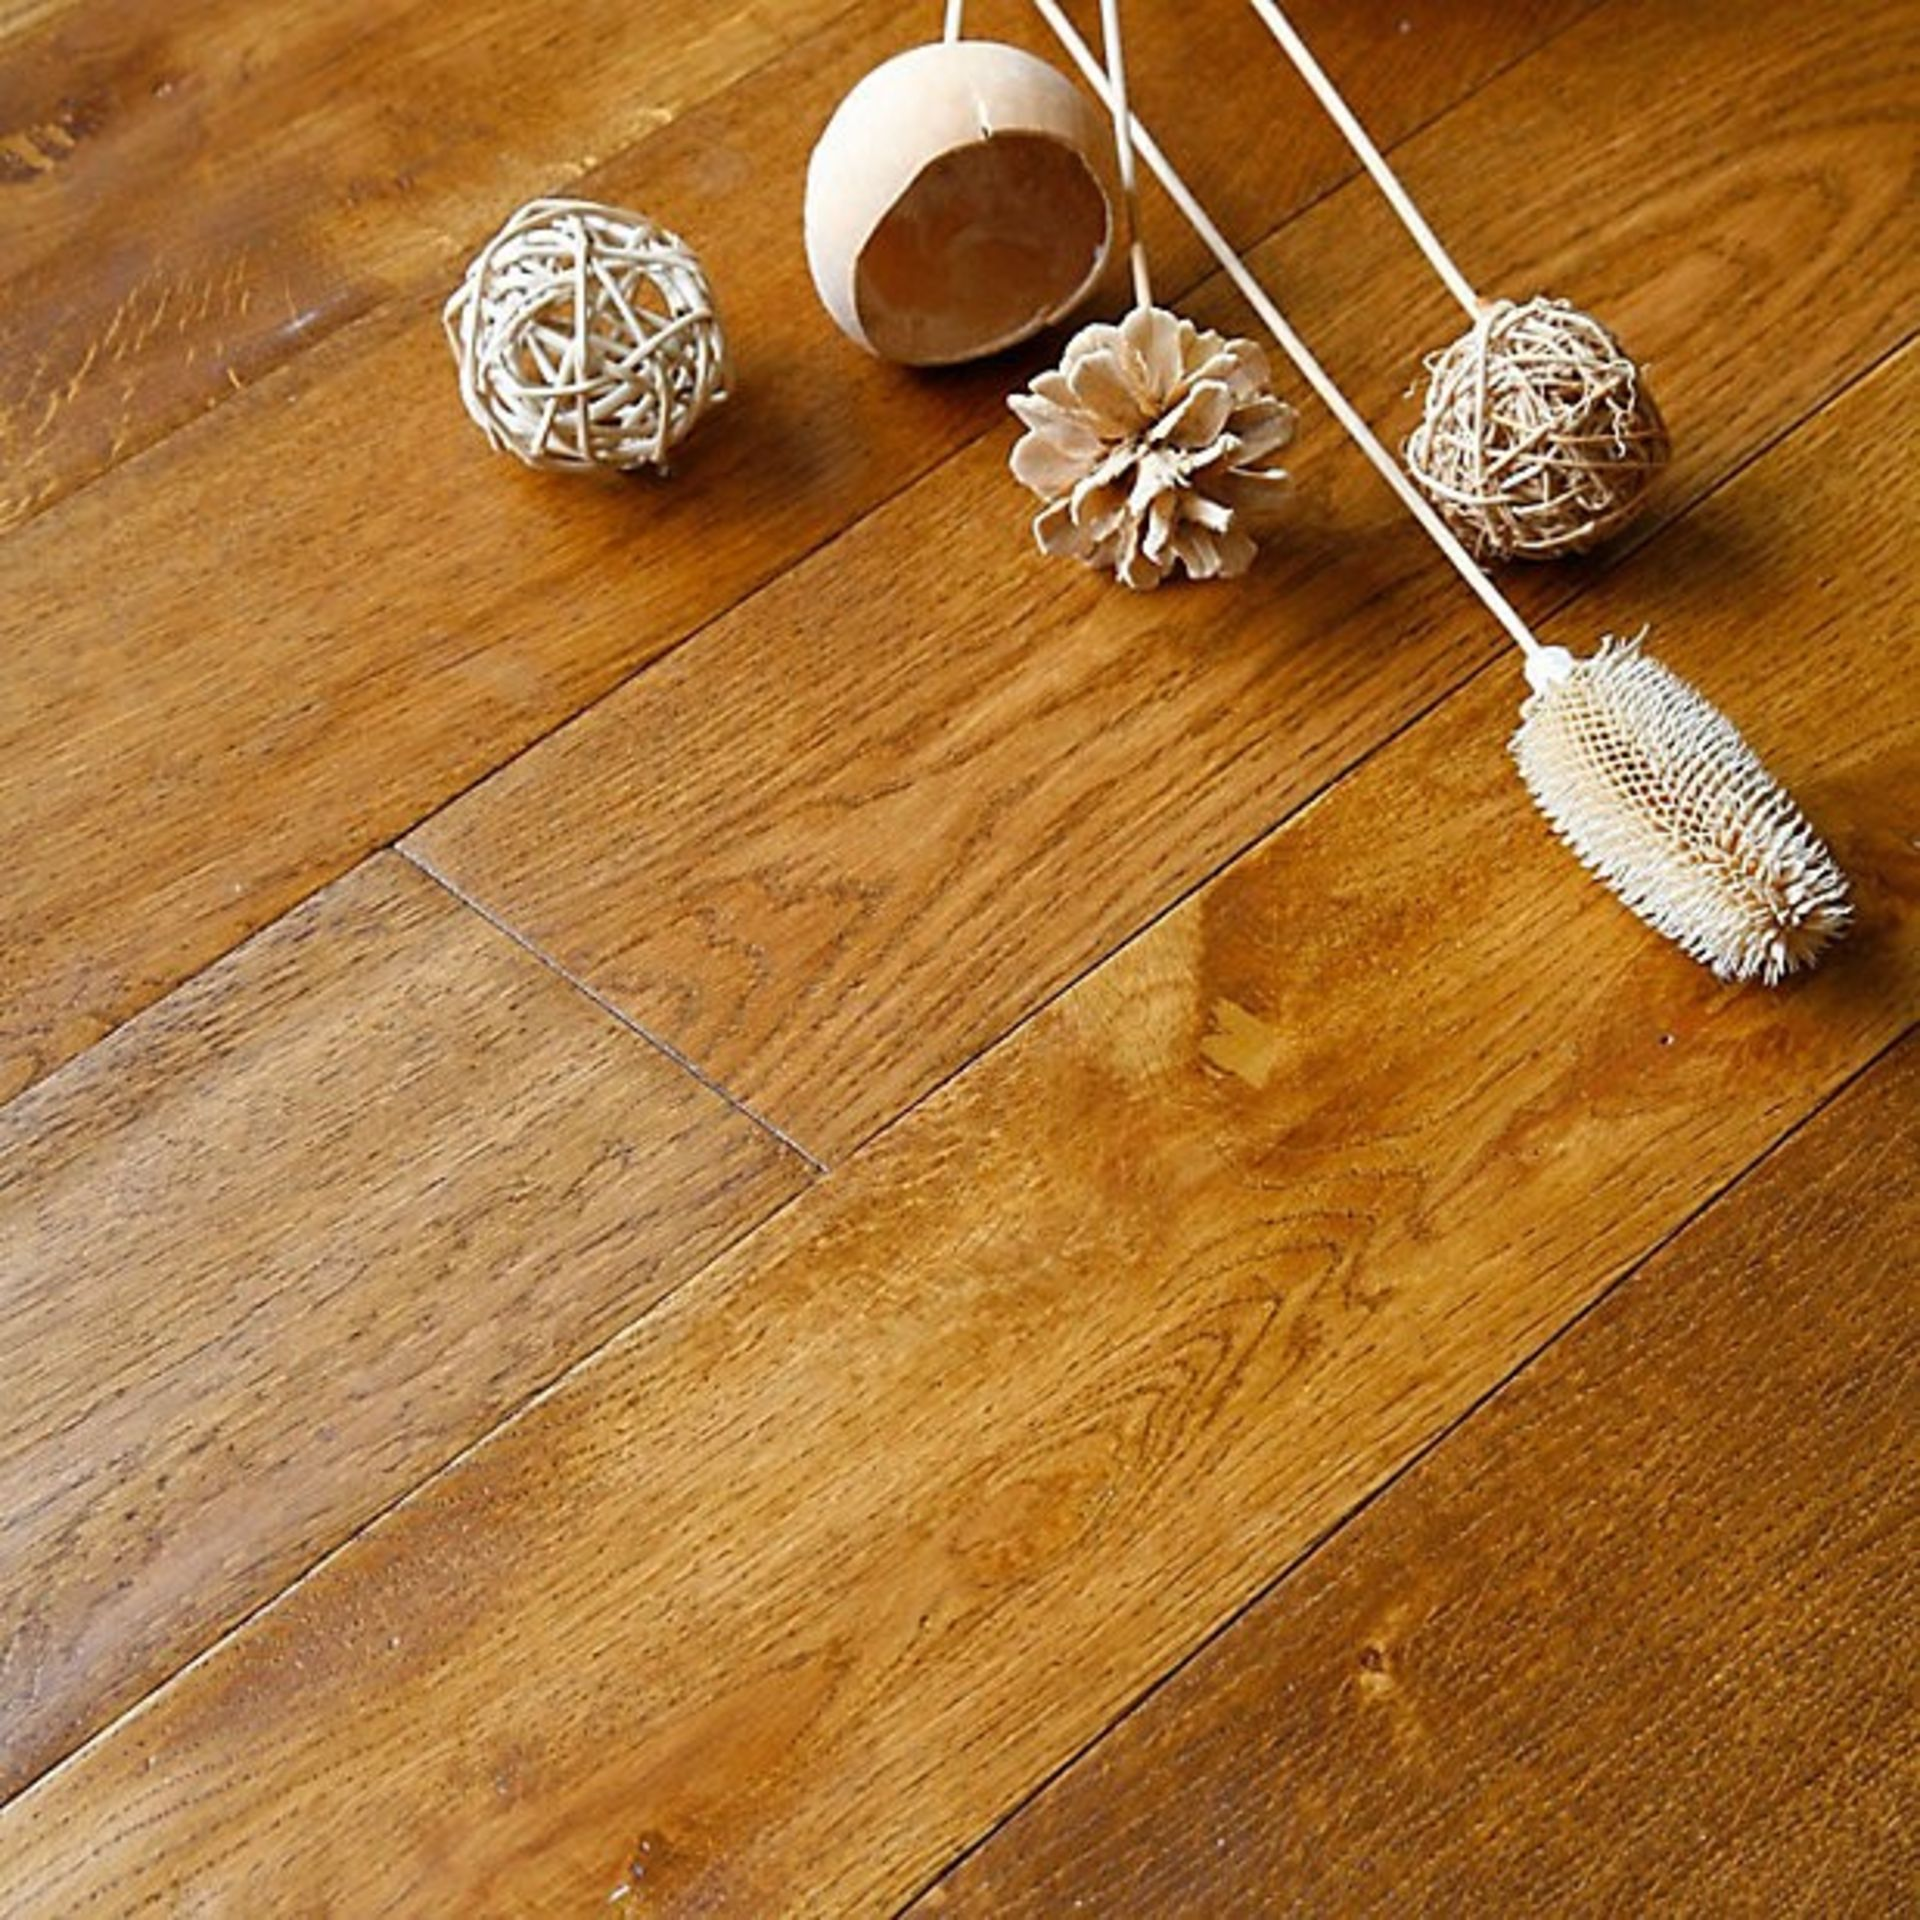 NEW 8.96M2 Ronda Solid Oak Flooring Wheat. 18mm thickness, 123x1200mm. The irresistible natural